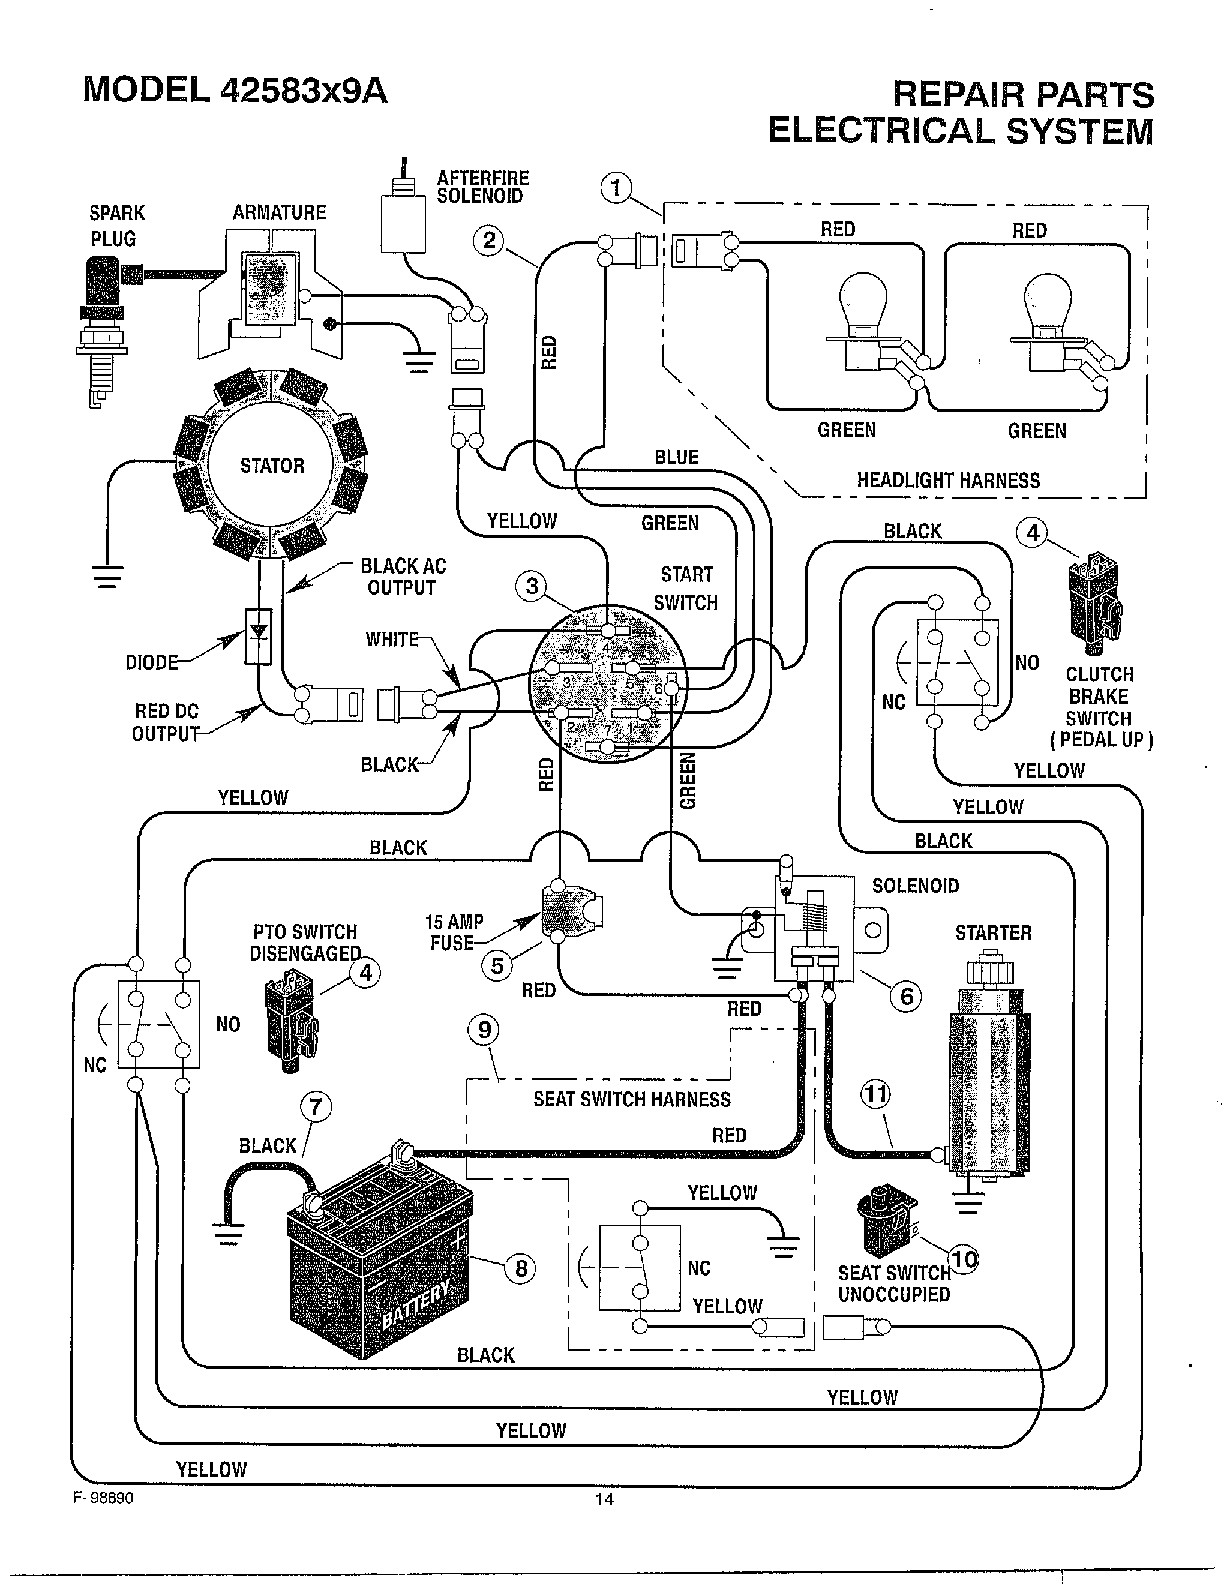 Kohler Engine Solenoid Wiring Diagram Start Building A Small Key Switch Briggs And Stratton Schematic Rh Asparklingjourney Com Manual